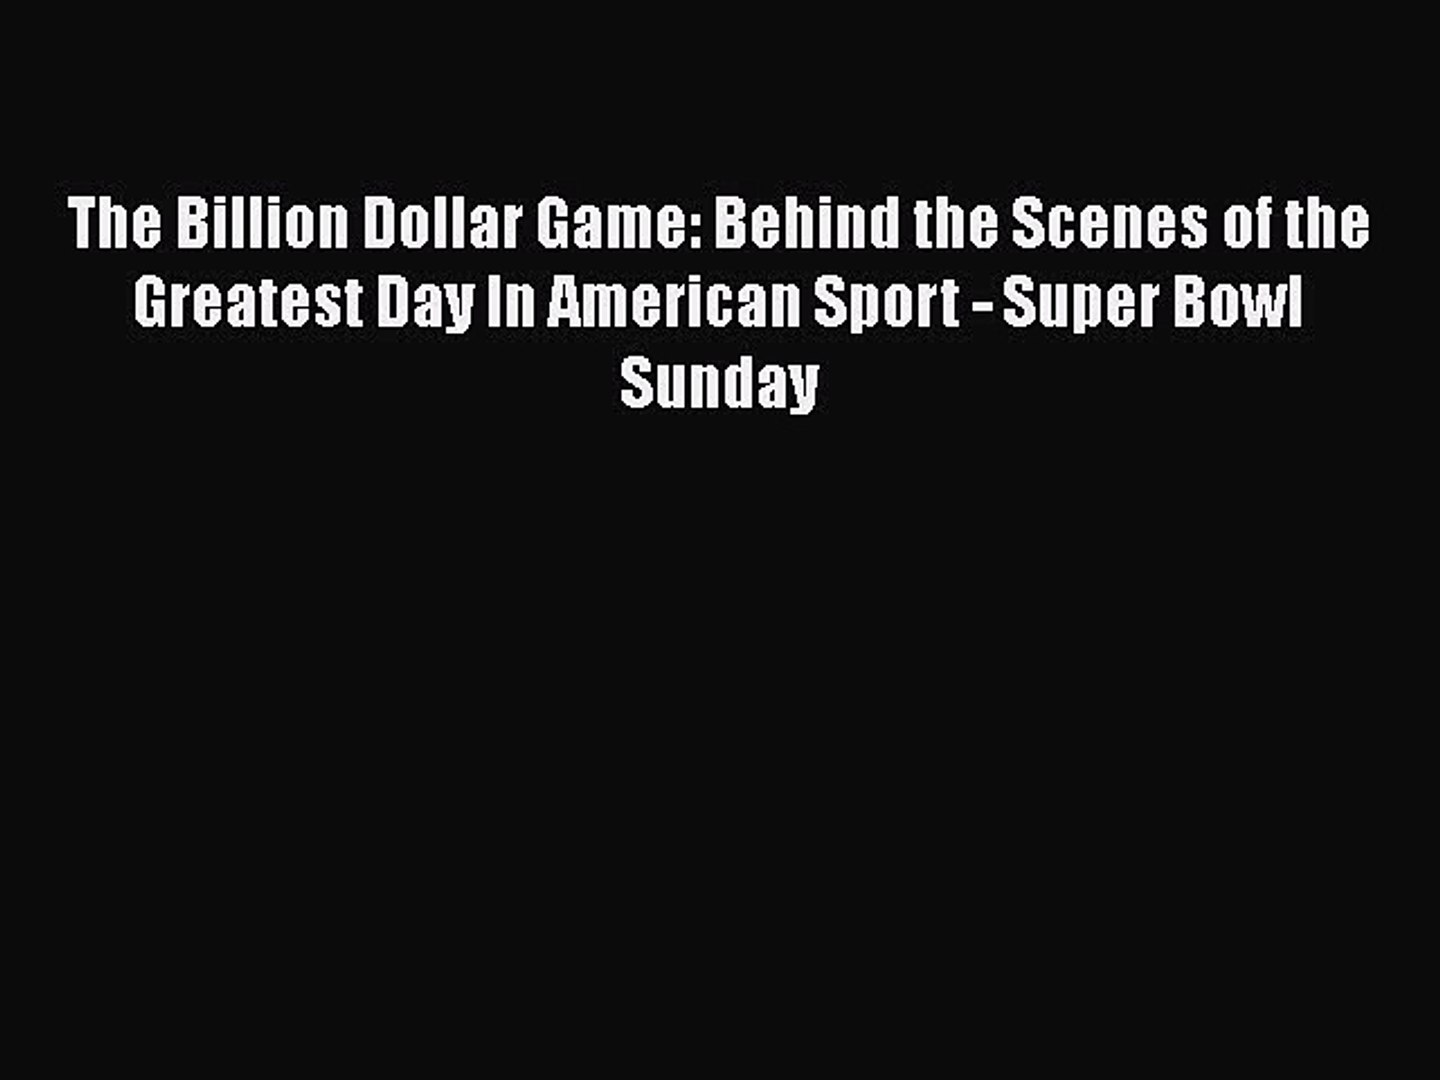 Read The Billion Dollar Game: Behind the Scenes of the Greatest Day In American Sport - Super